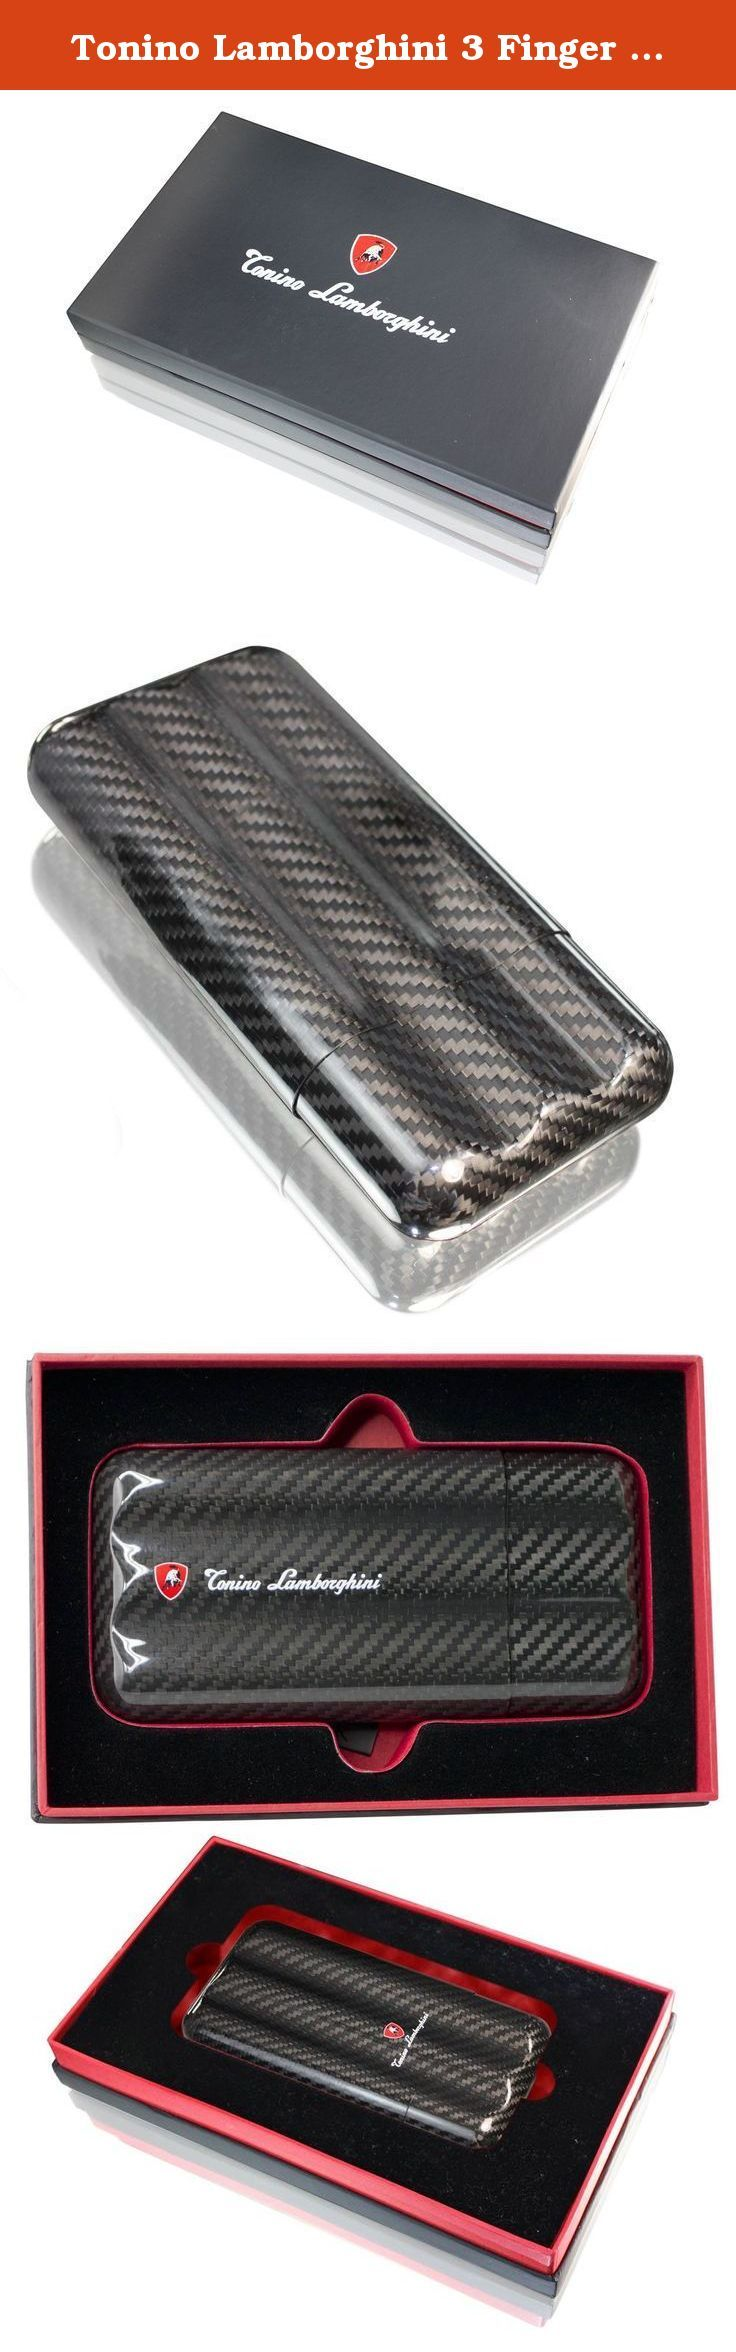 Tonino Lamborghini 3 Finger Carbon Fiber Cigar Case. This Tonino Lamborghini travel cigar tube features a carbon fiber body and holds three cigars. The tube is size adjustable for multiple sizes of cigars. It comes in a black gift box ready to be wrapped.